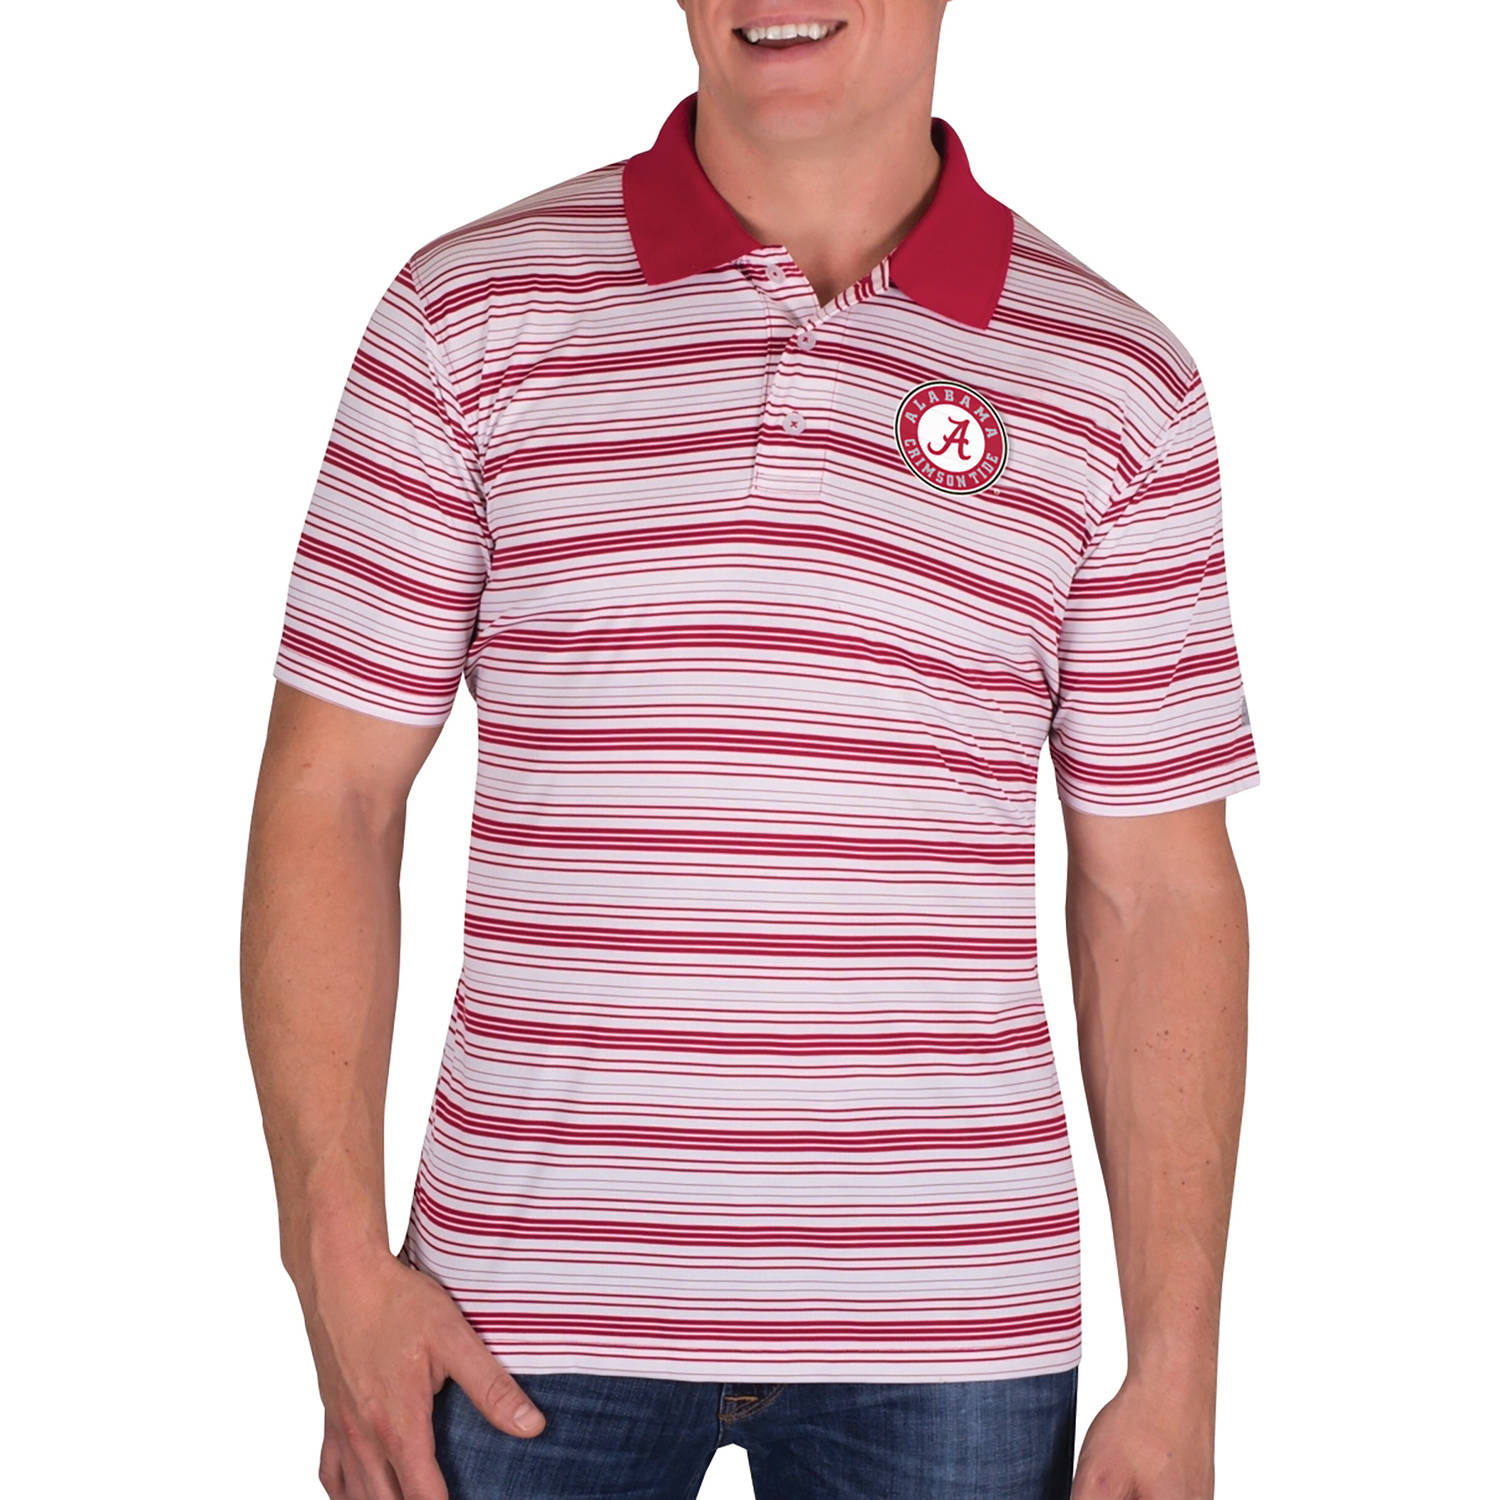 NCAA Alabama Crimson Tide Men's Classic-Fit Striped Polo Shirt